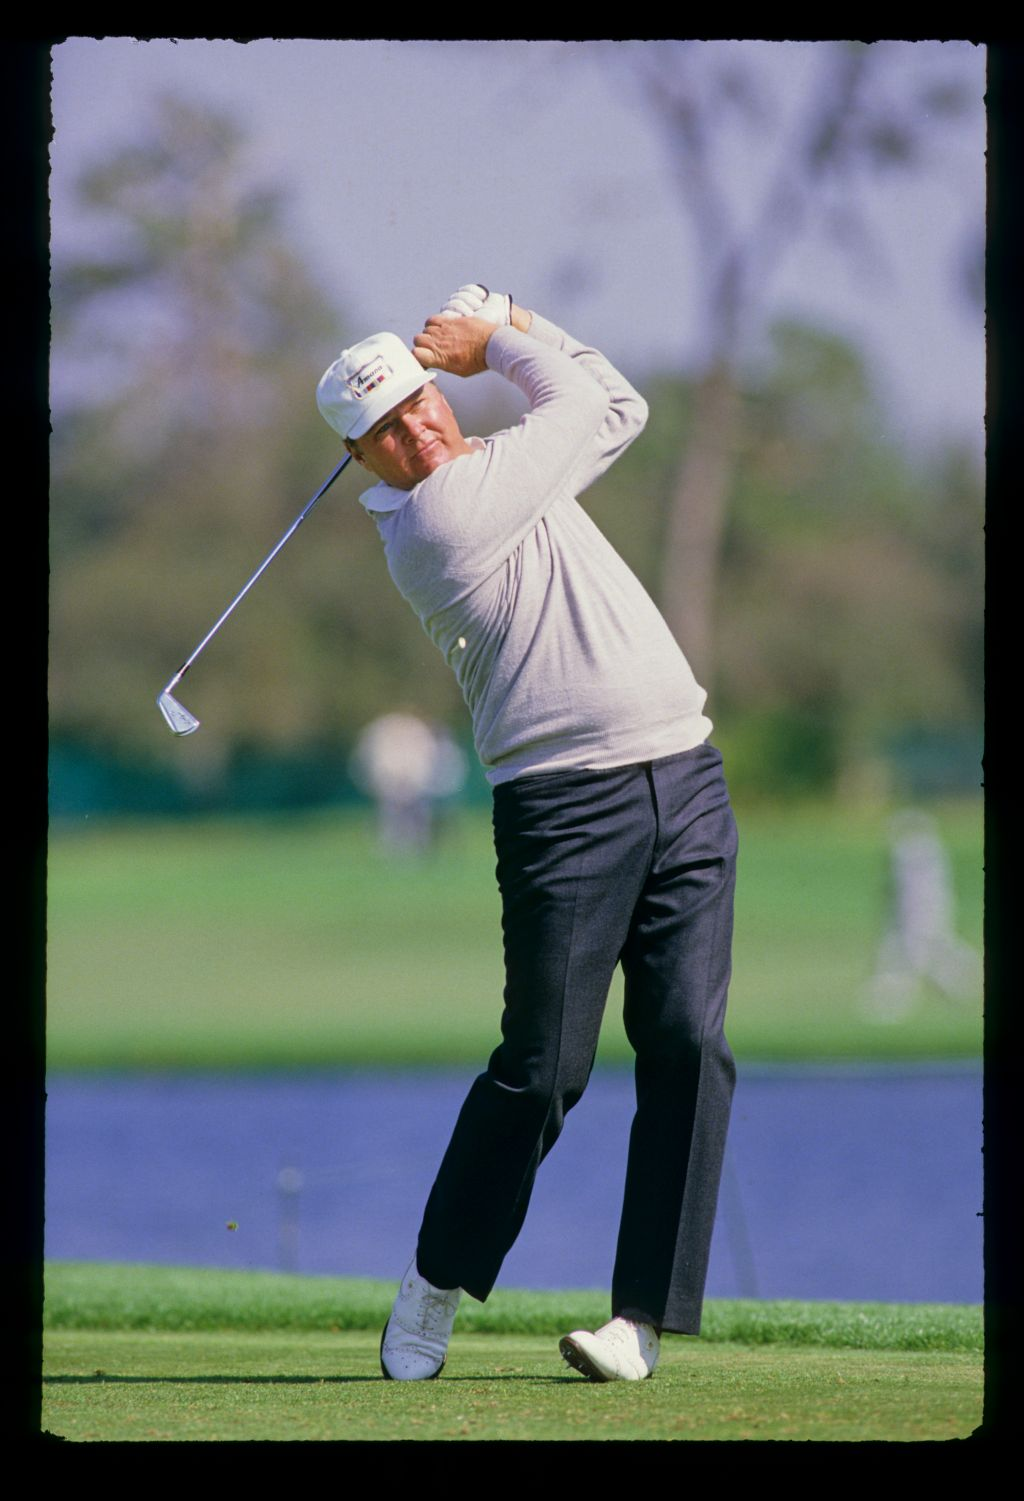 The tee peg pops up to waist height as Lon Hinkle hits iron off the tee at the 1987 Hertz Bay Hill Classic